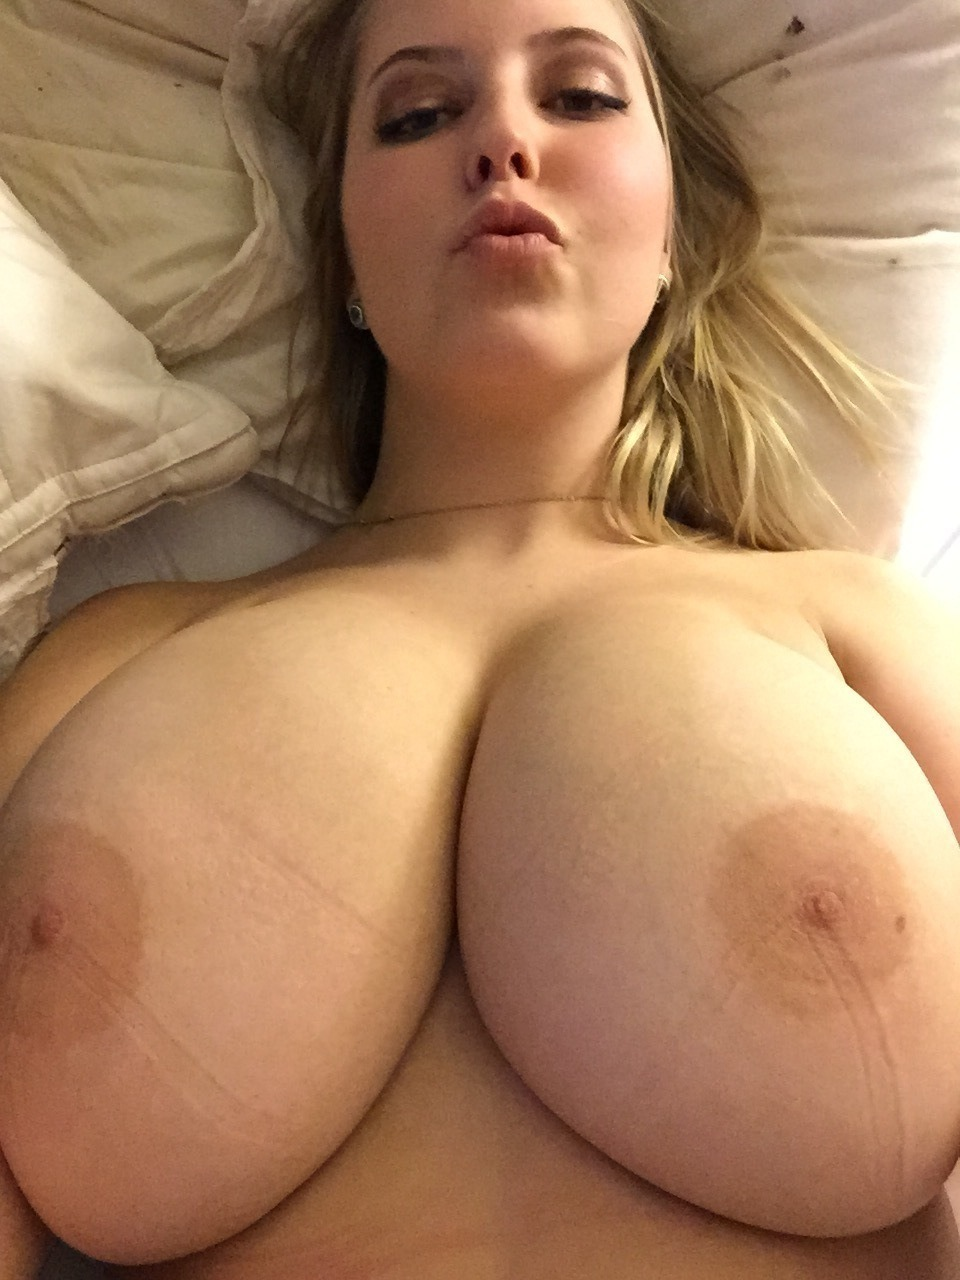 tumblr women boobs